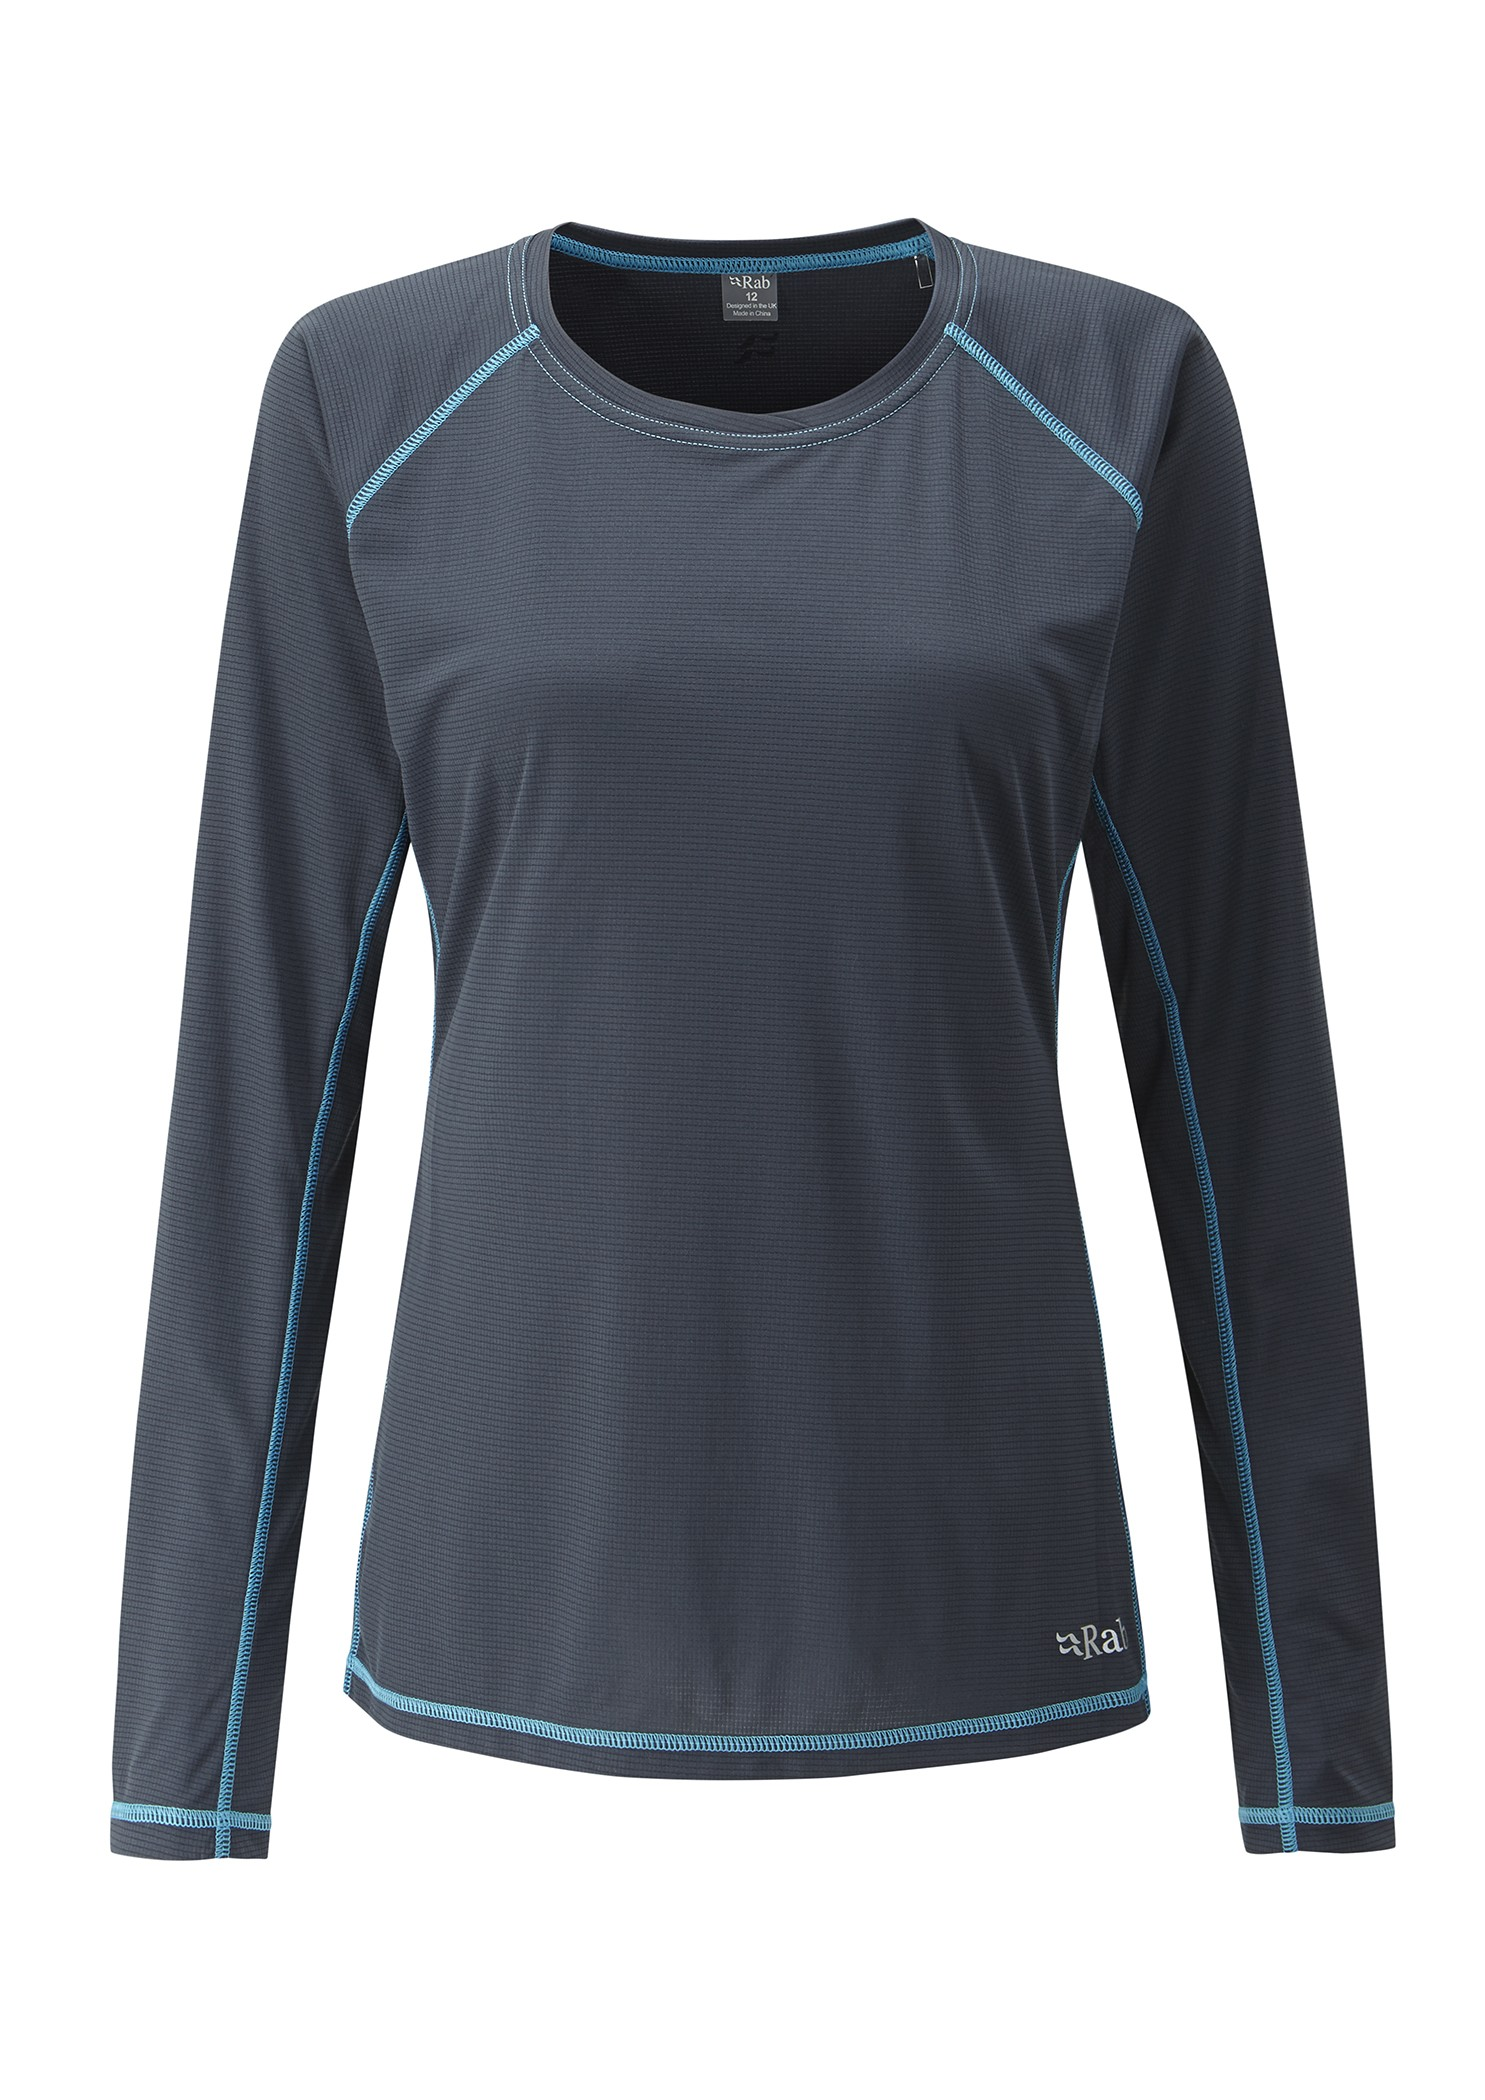 Rab-Femmes-Interval-Tee-Sous-Pull-Manches-Longues-Haut